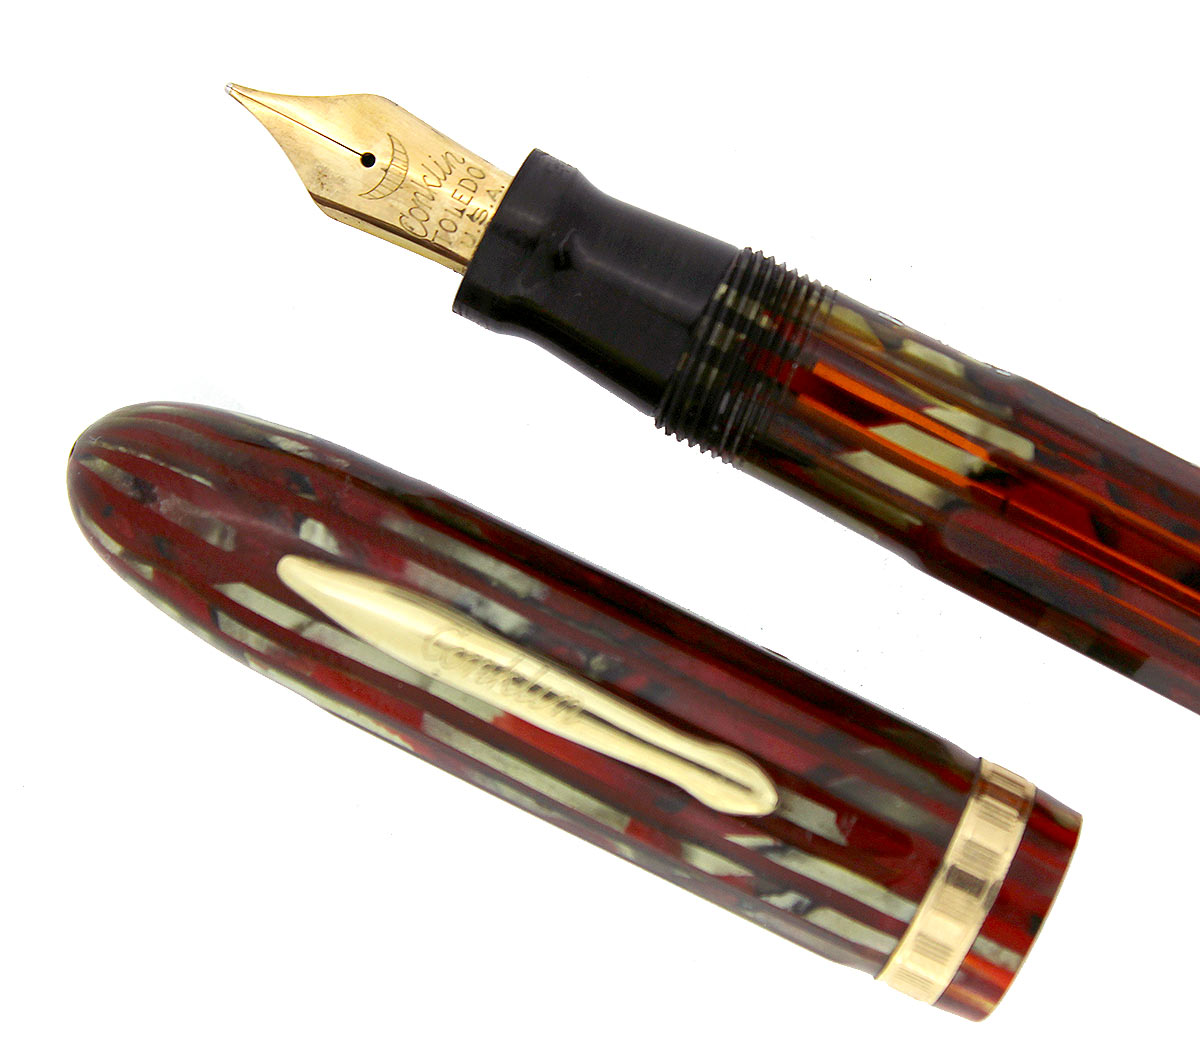 CIRCA 1935 CONKLIN NOZAC RED PEARL STRIPED 5M WORD GAUGE FOUNTAIN PEN RESTORED OFFERED BY ANTIQUE DIGGER